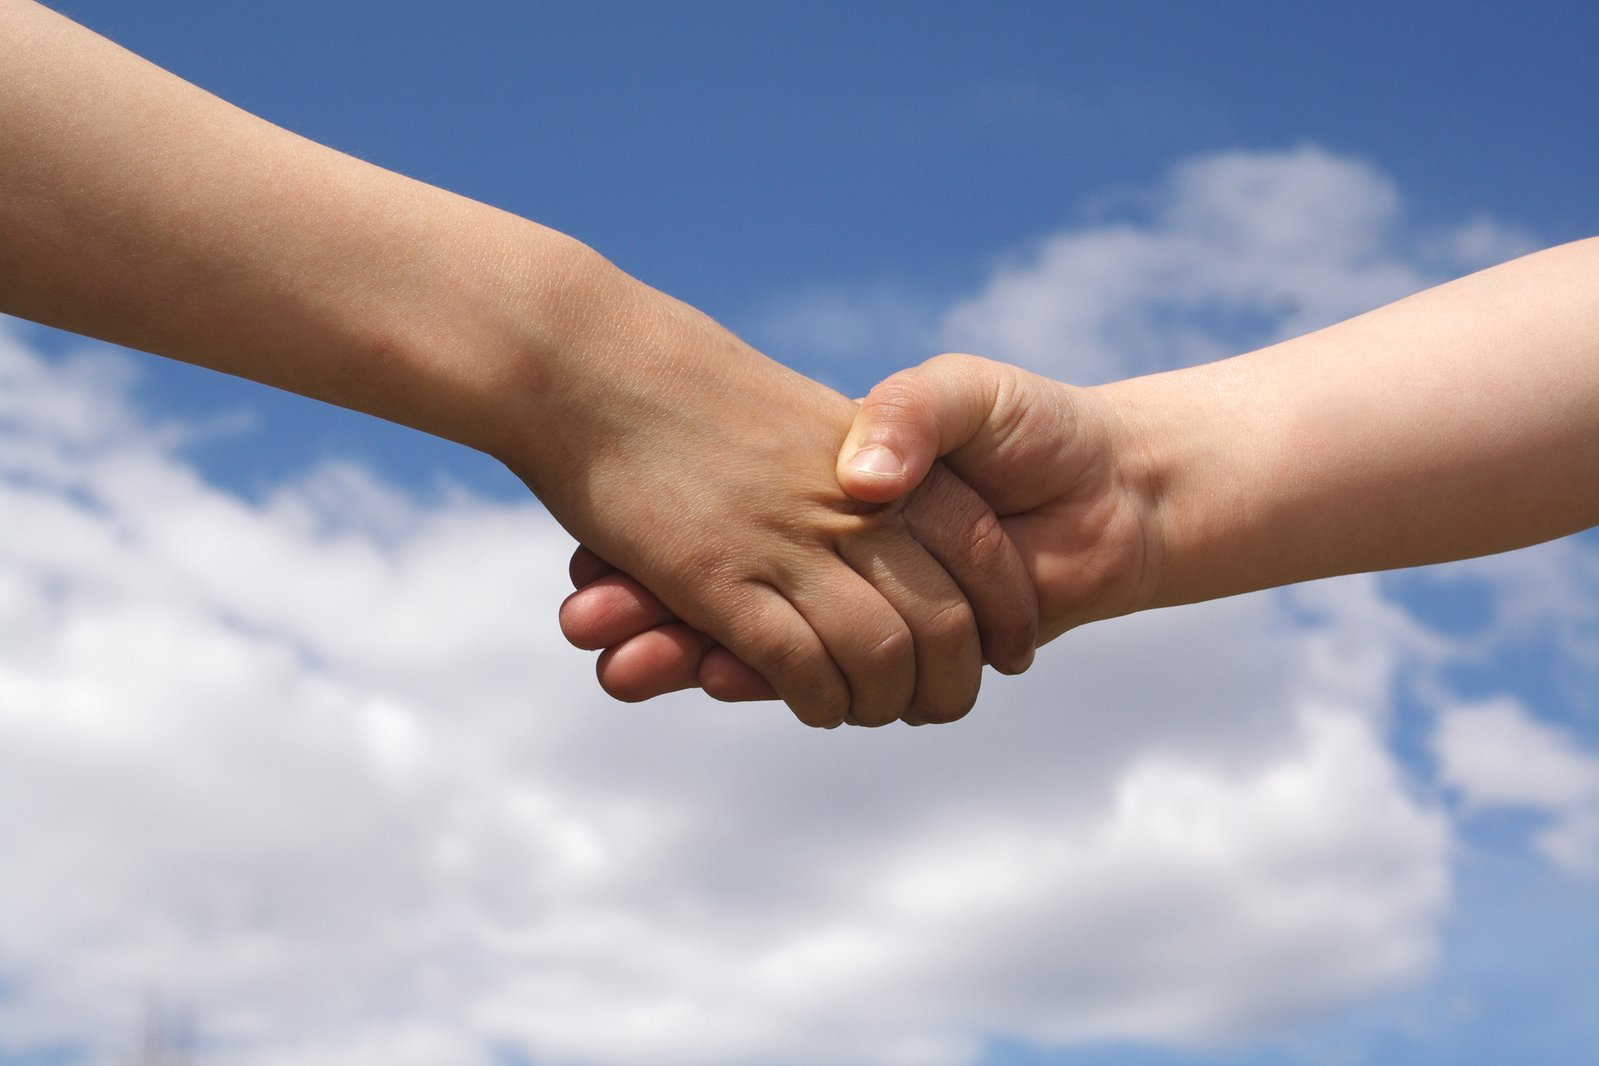 Free Kids shaking hands Stock Photo - FreeImages.com